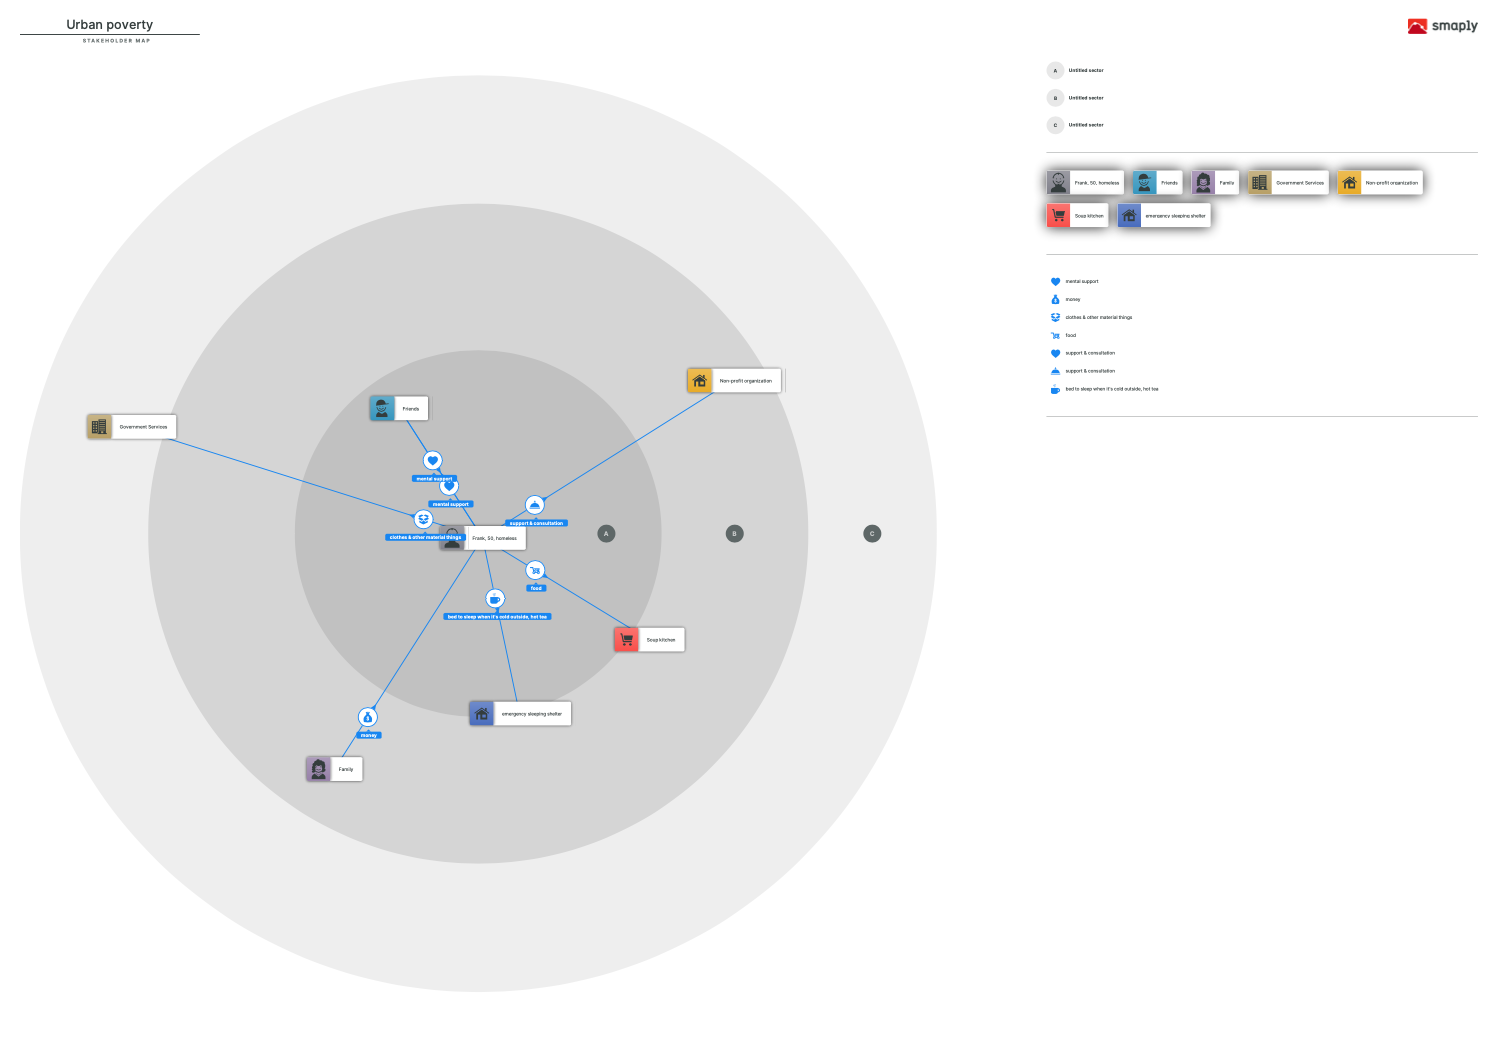 stakeholder map visualizing the network for a homeless person in a city